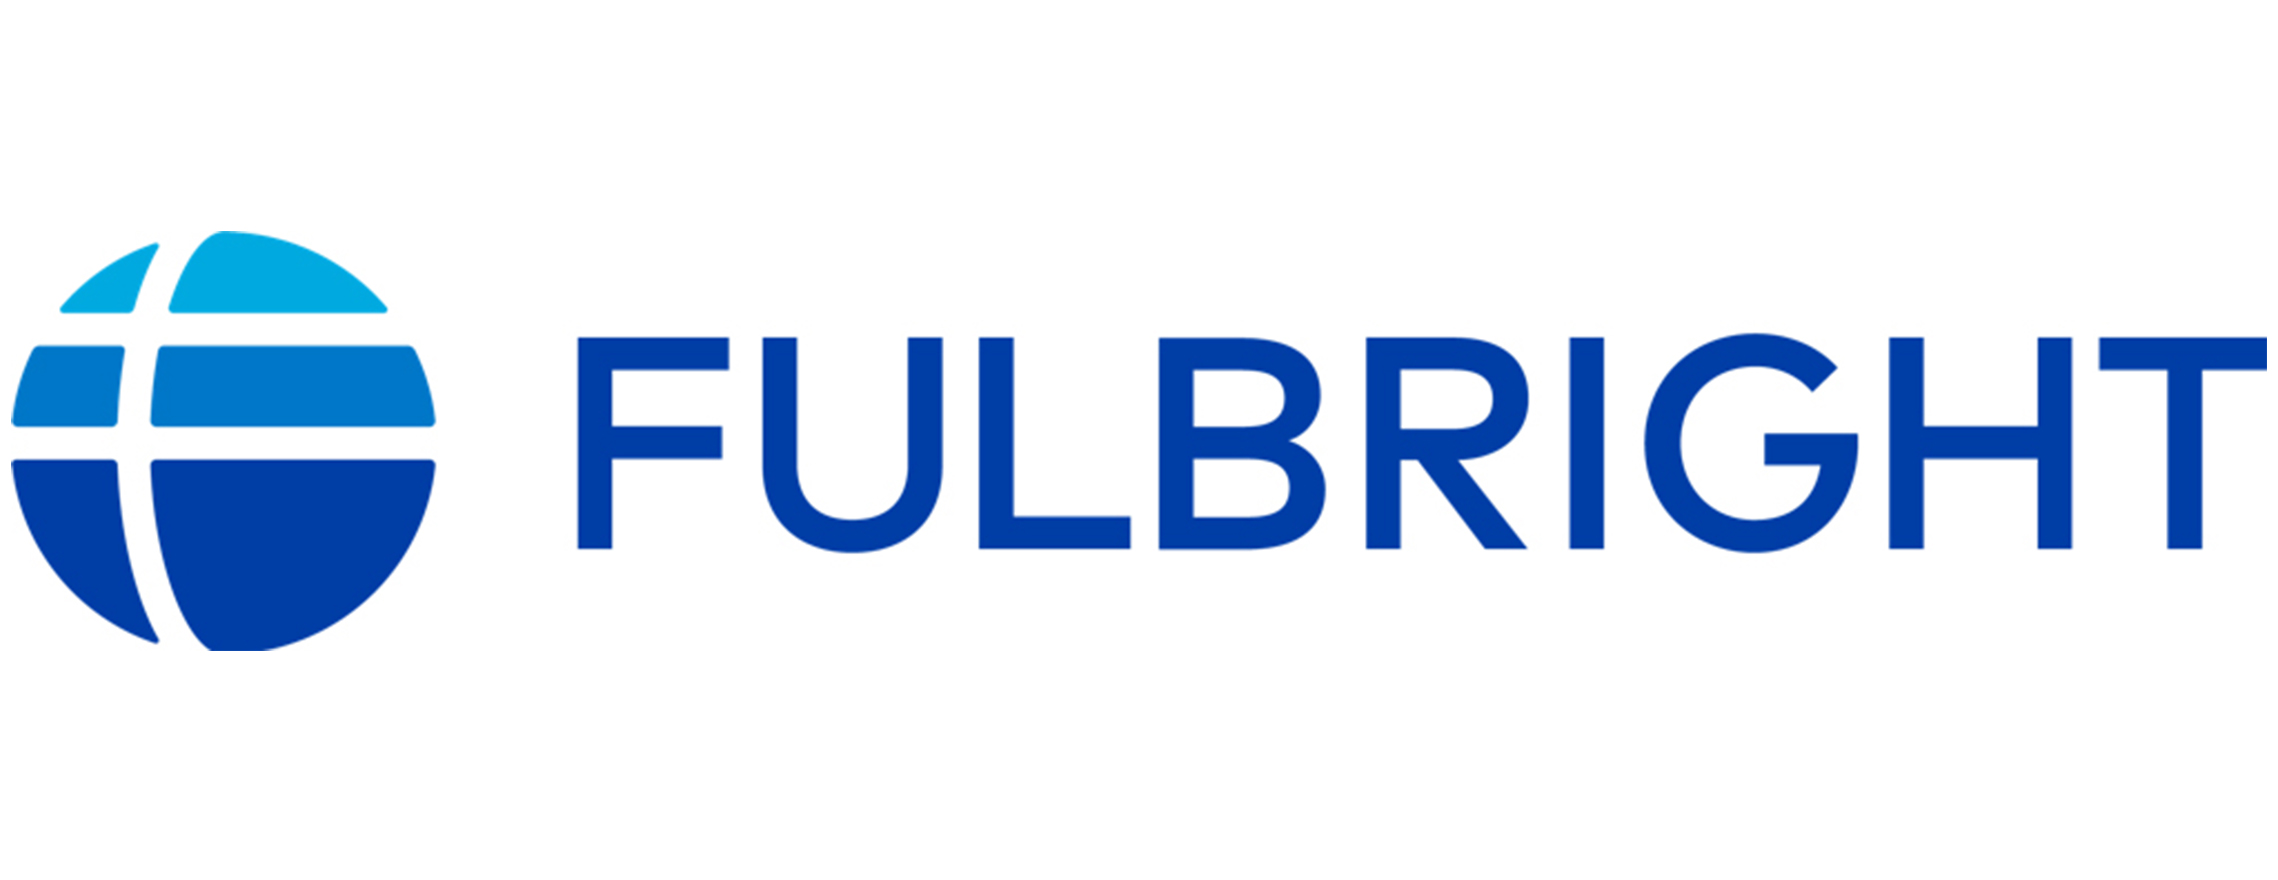 Applications Open for Fulbright Australia and Fulbright New Zealand